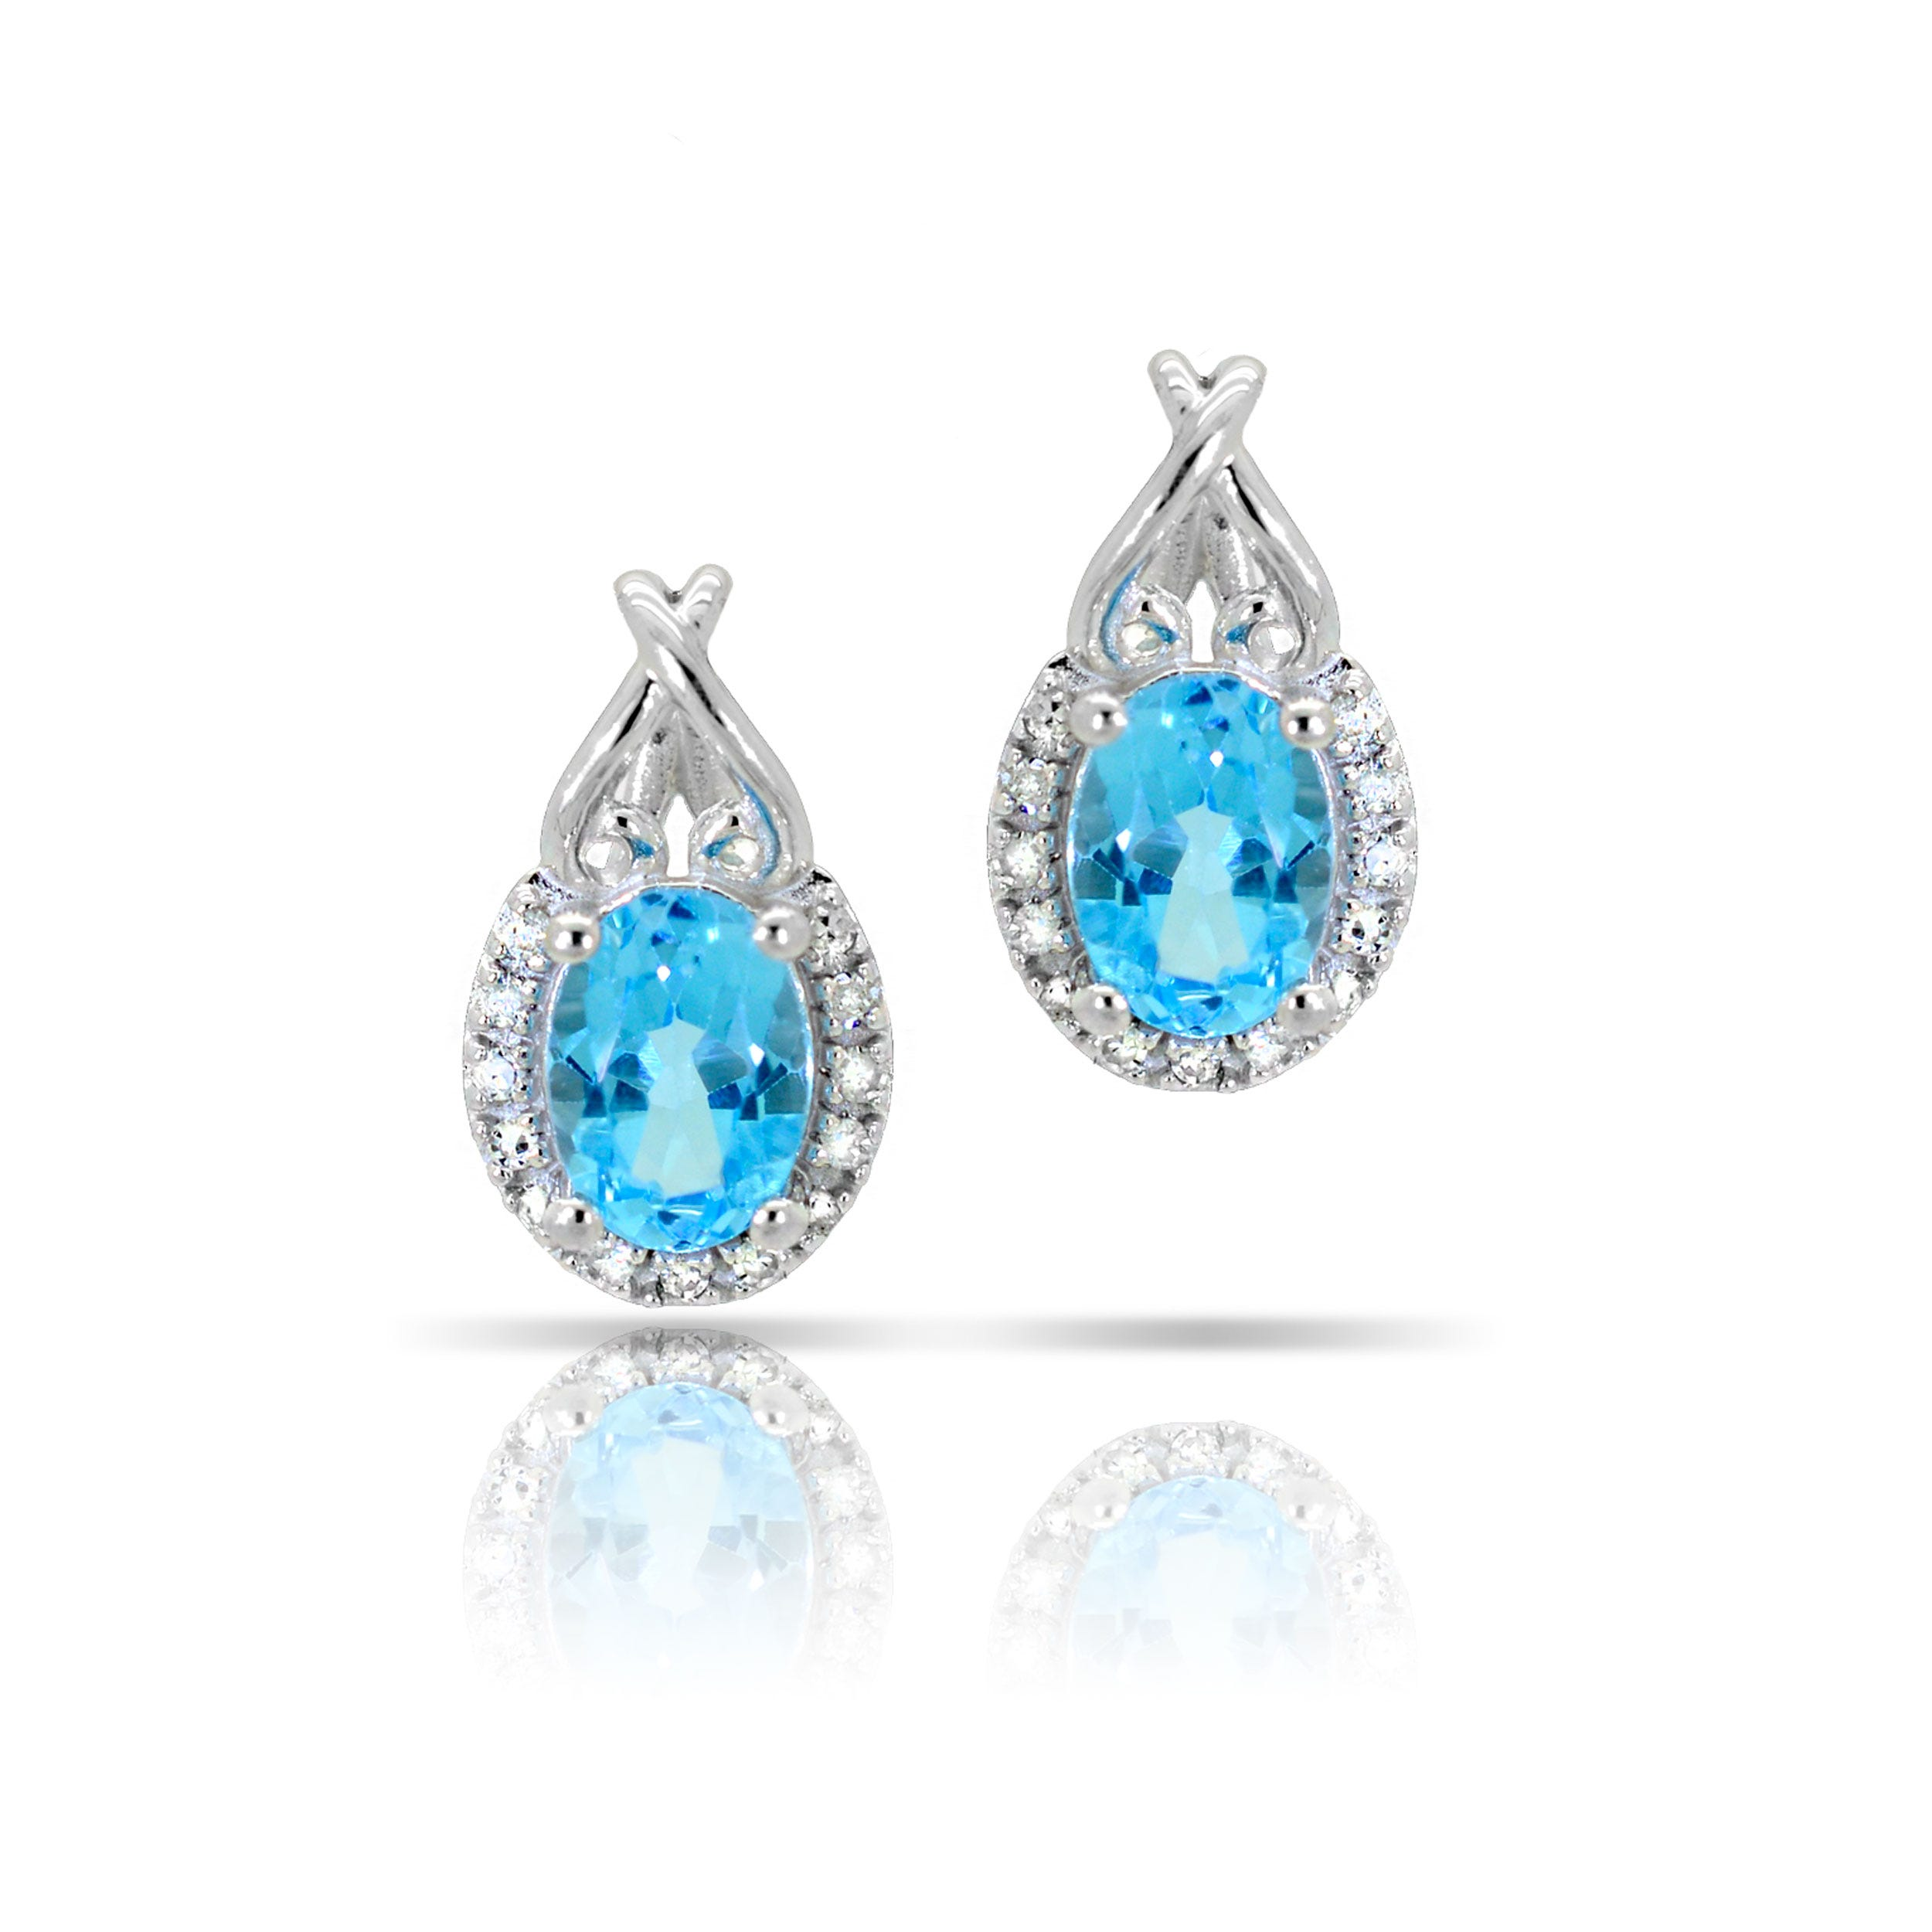 Blue Topaz & Diamond Oval Earrings in 10k White Gold